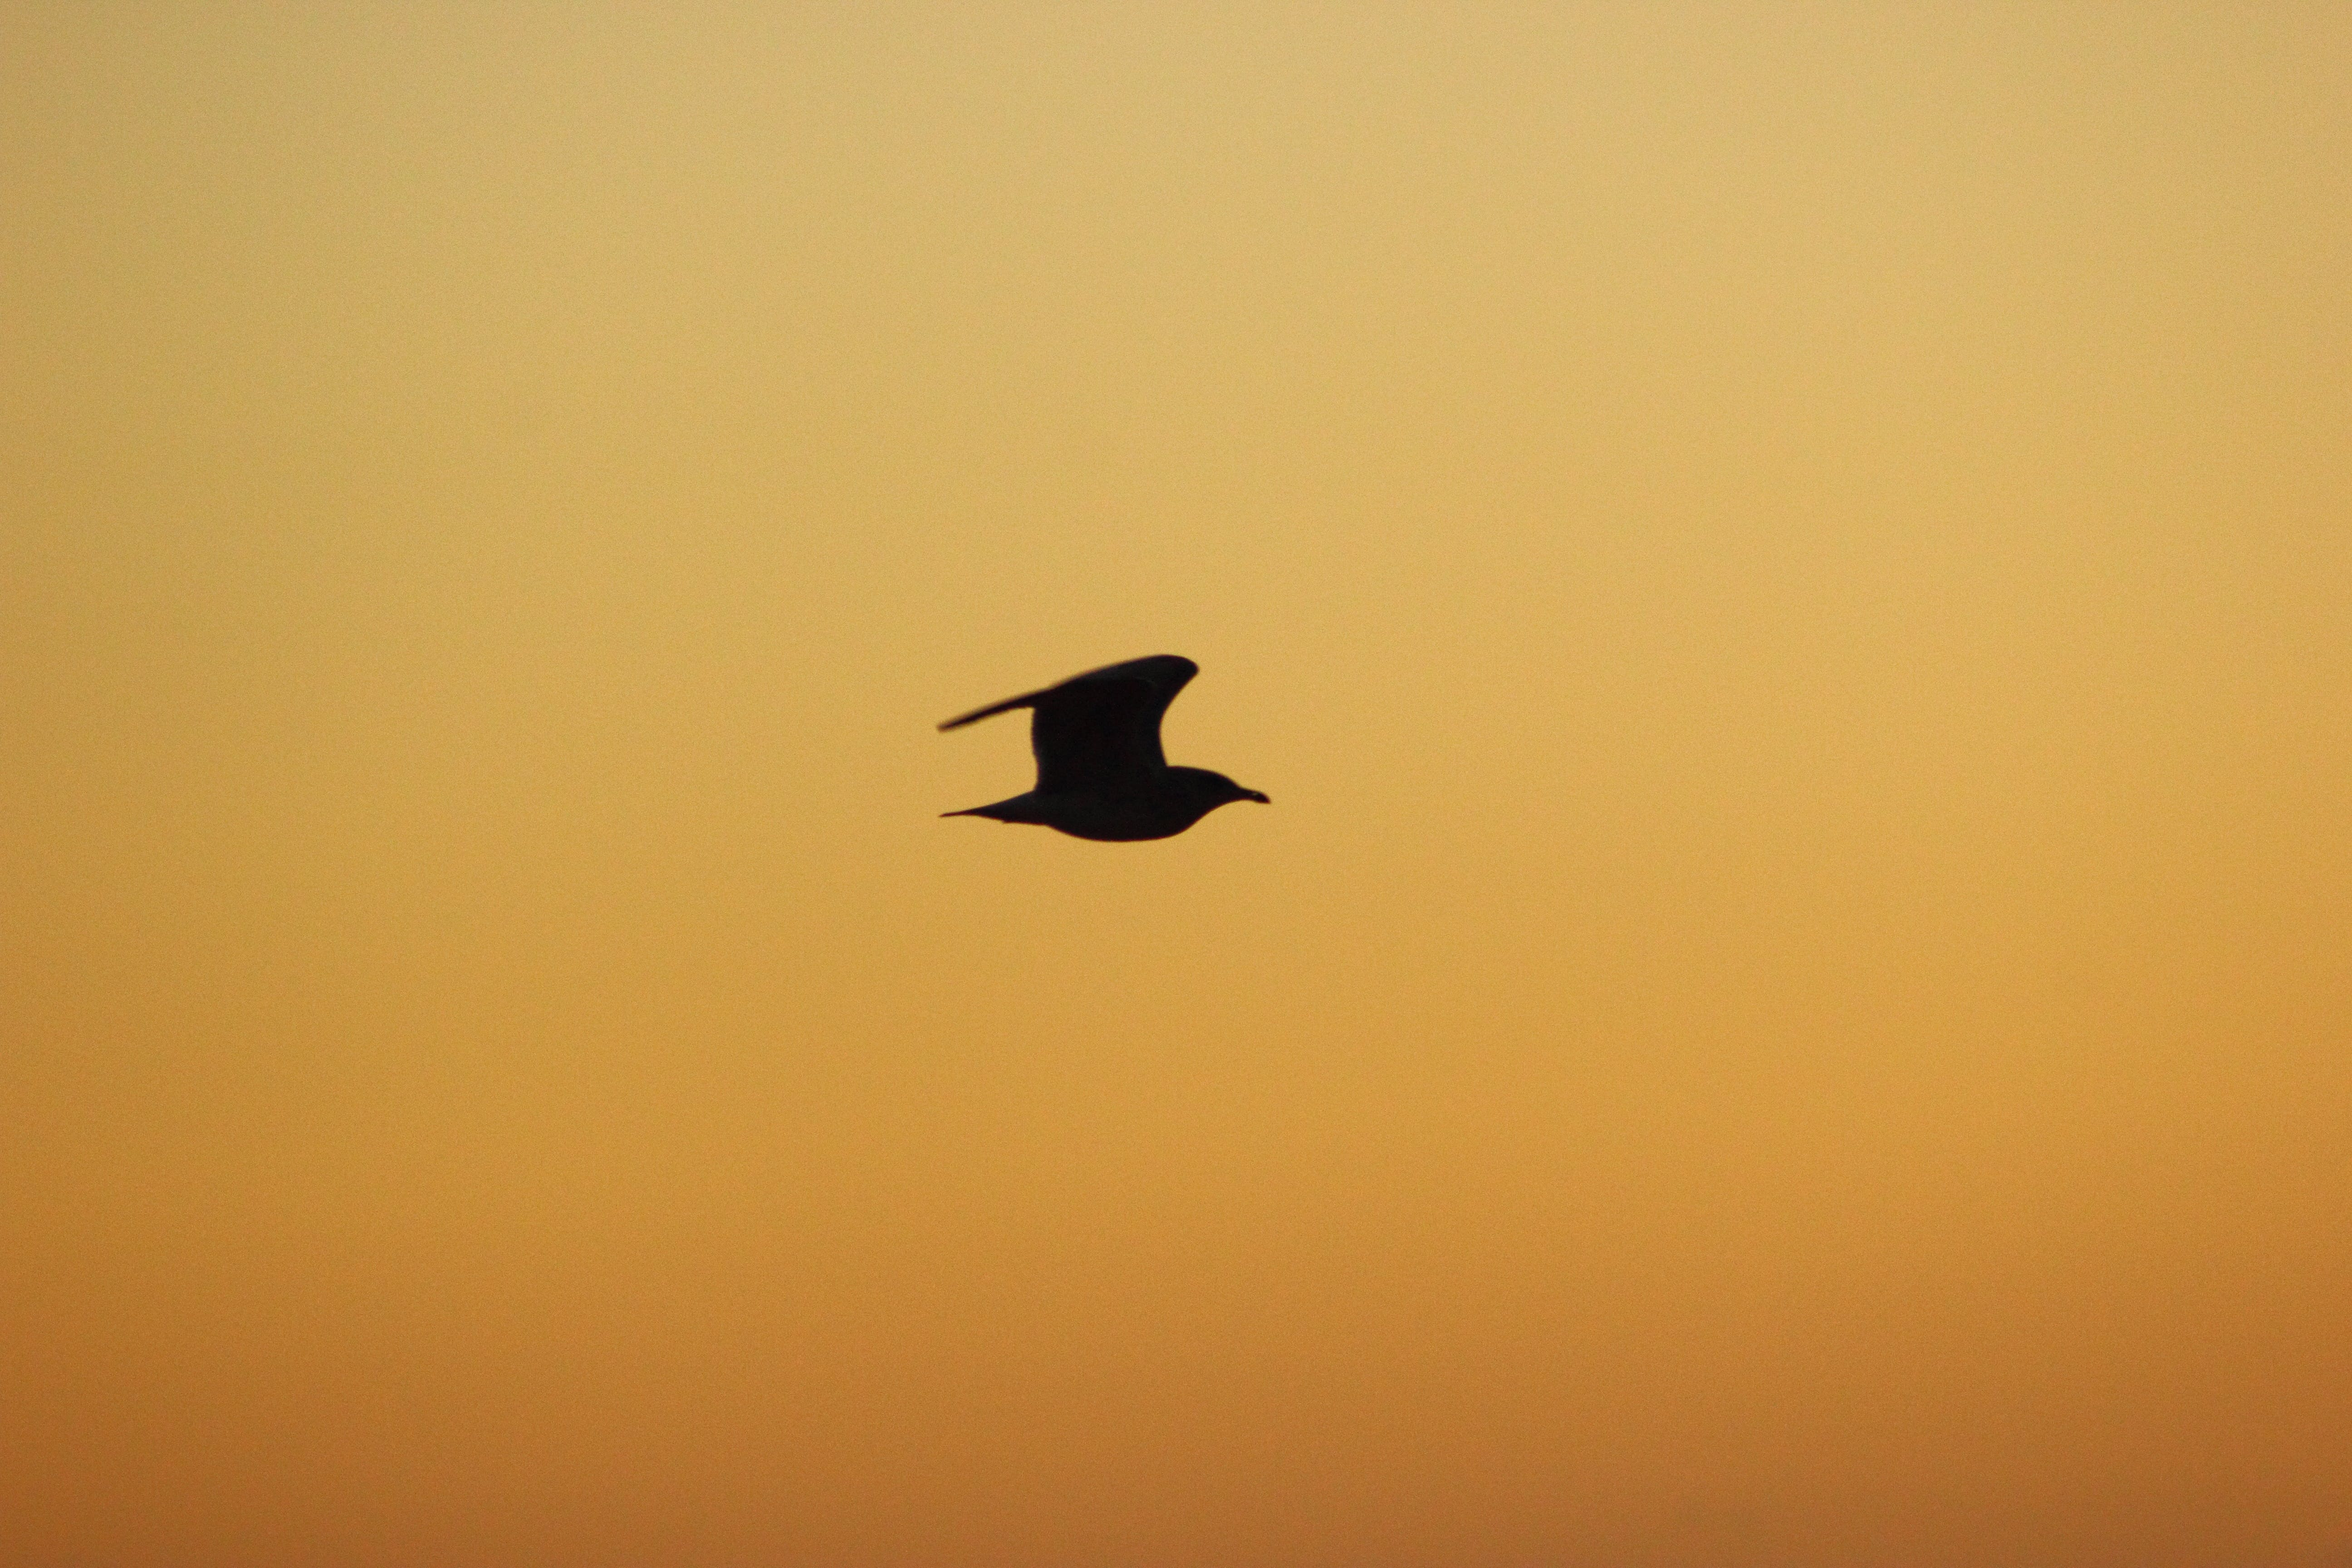 Free stock photo of sky, bird, sunrise, silhouette